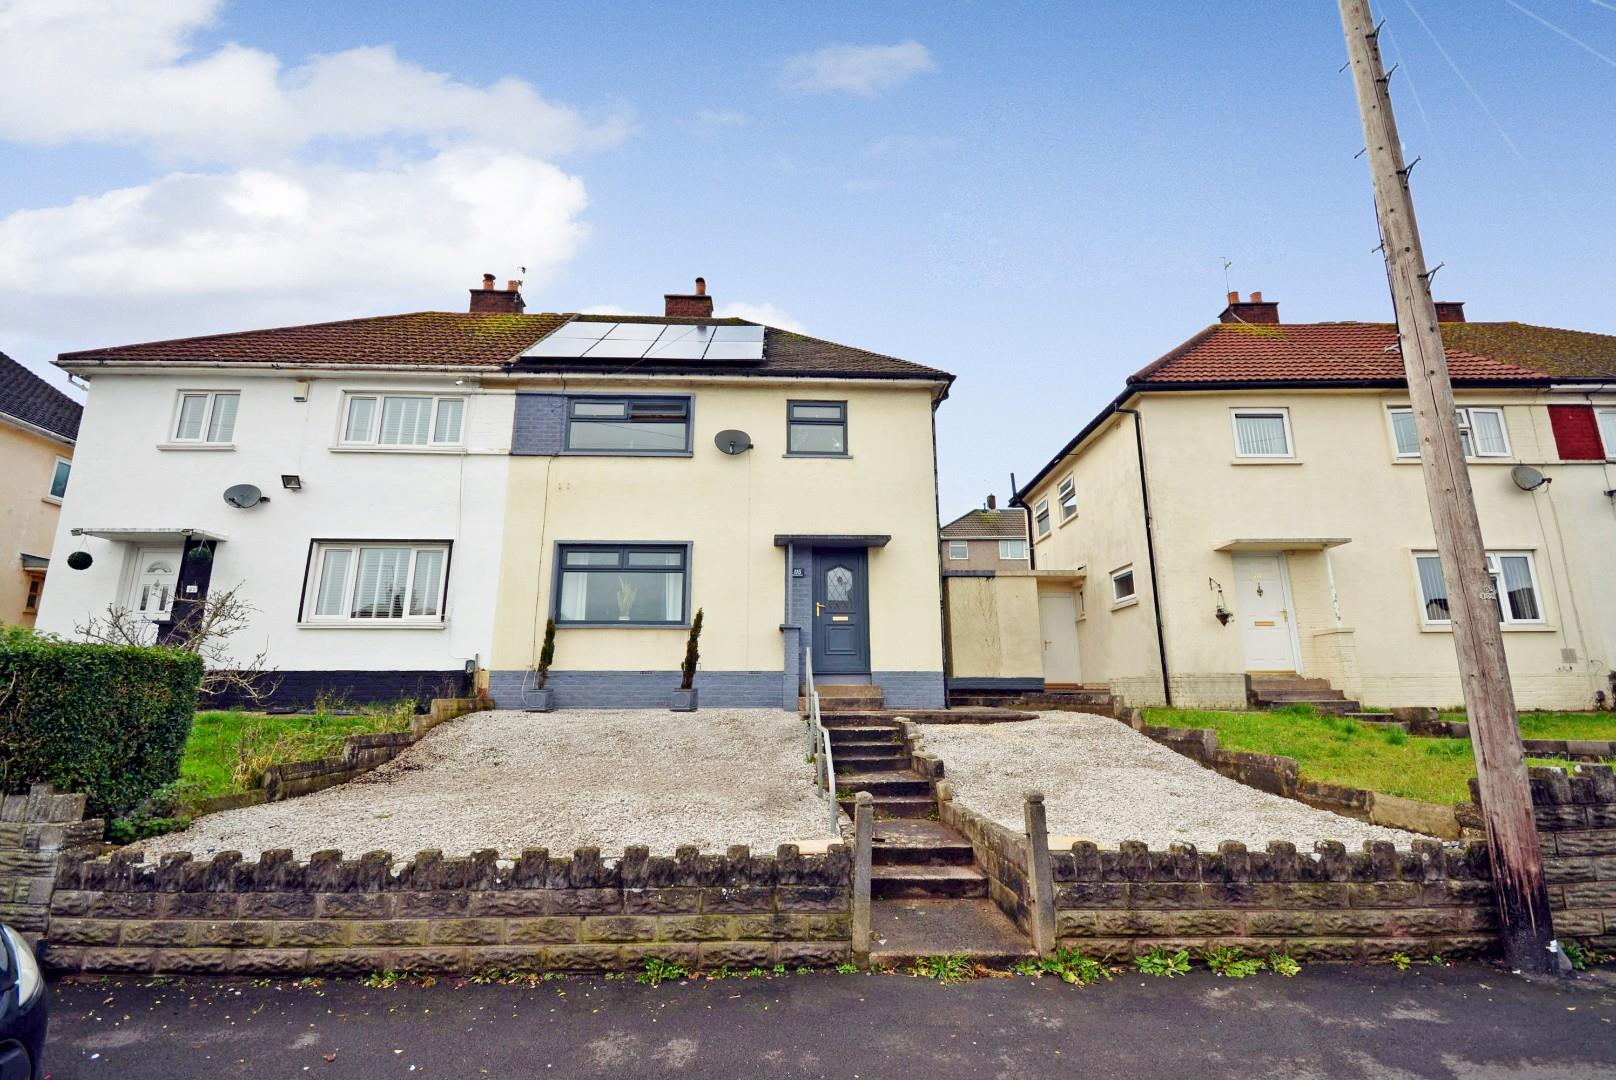 3 bed semi-detached house for sale in Llandudno Road, Cardiff, CF3